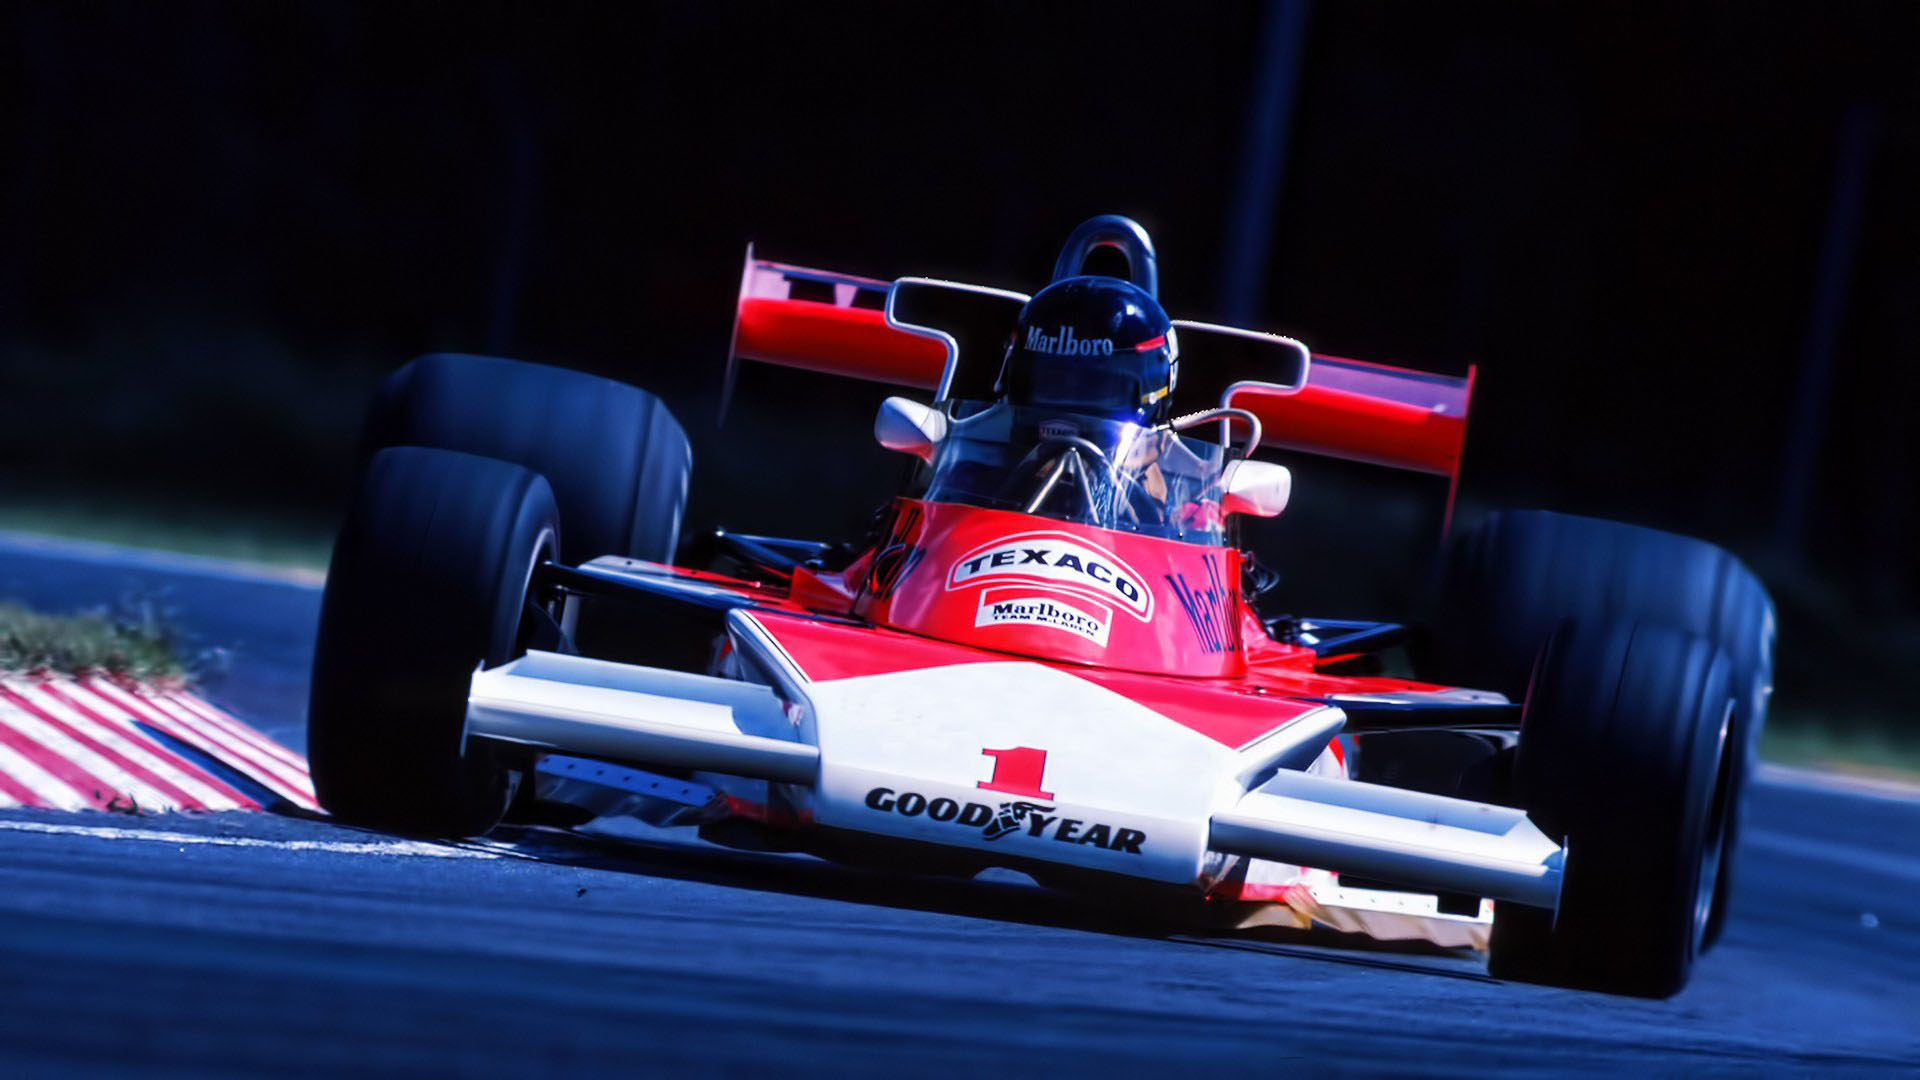 Formula 1 james hunt race race cars 1920x1080 1